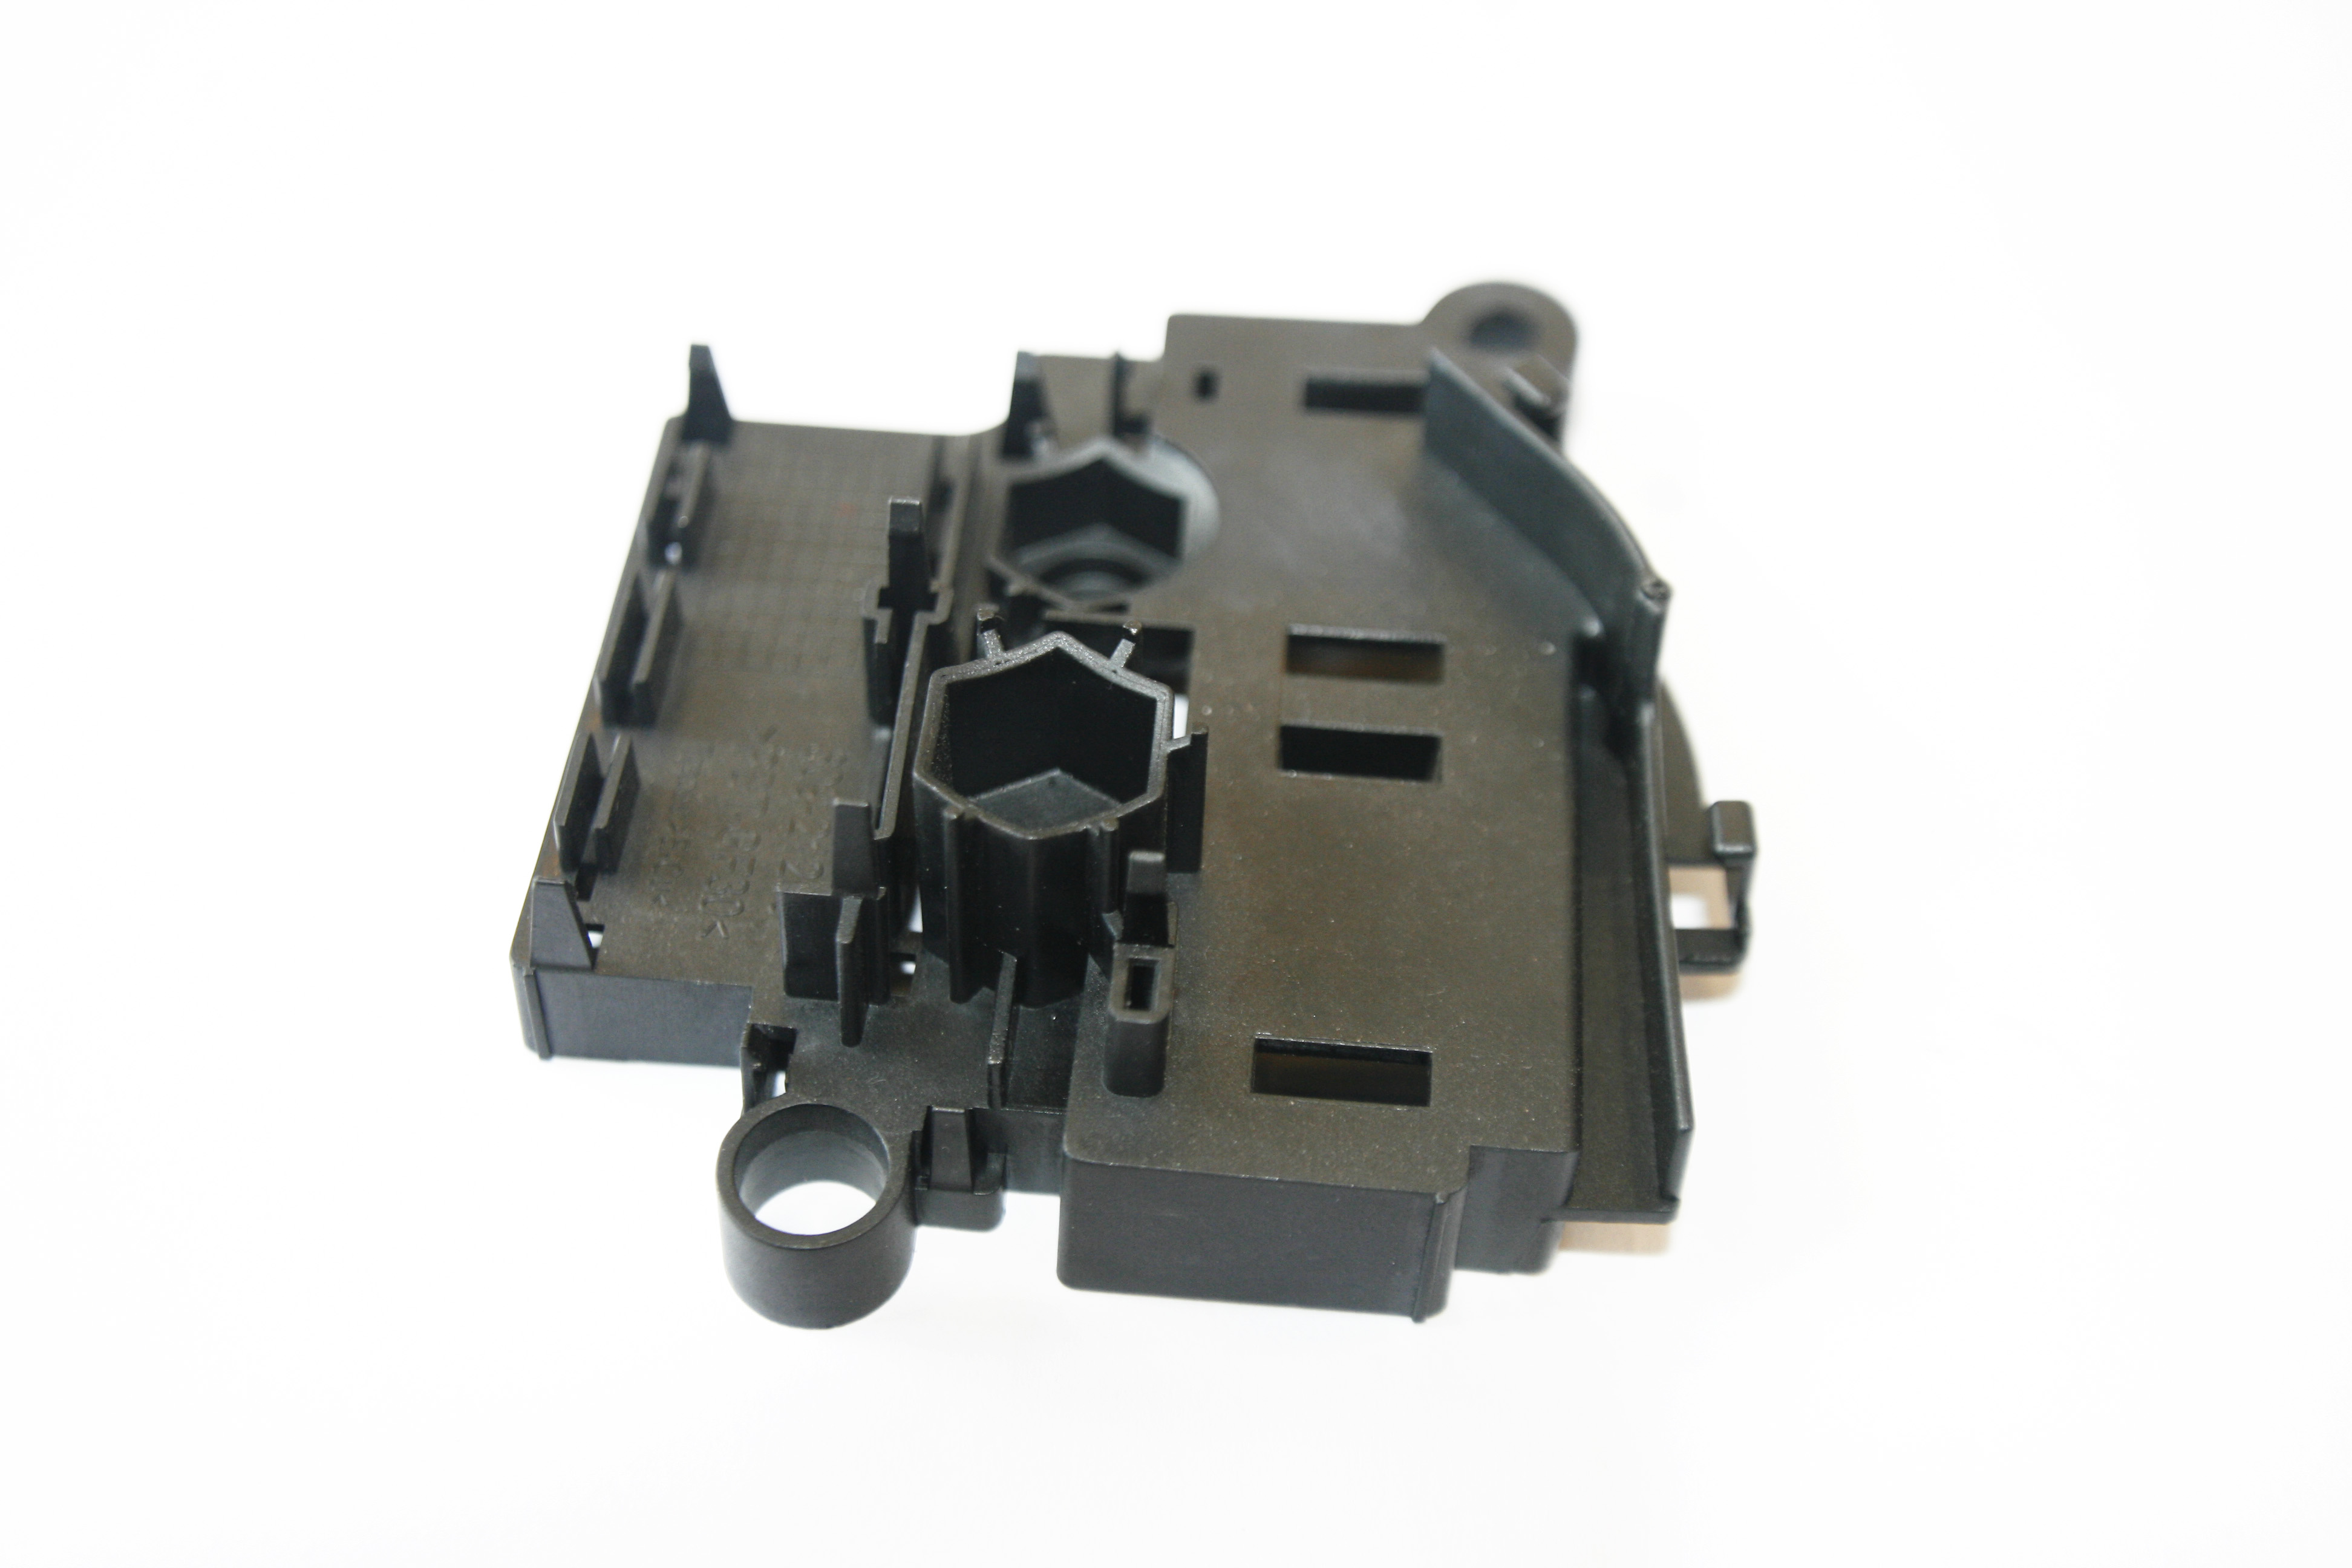 professional plastic injection mould manufacturer in Shenzhen China